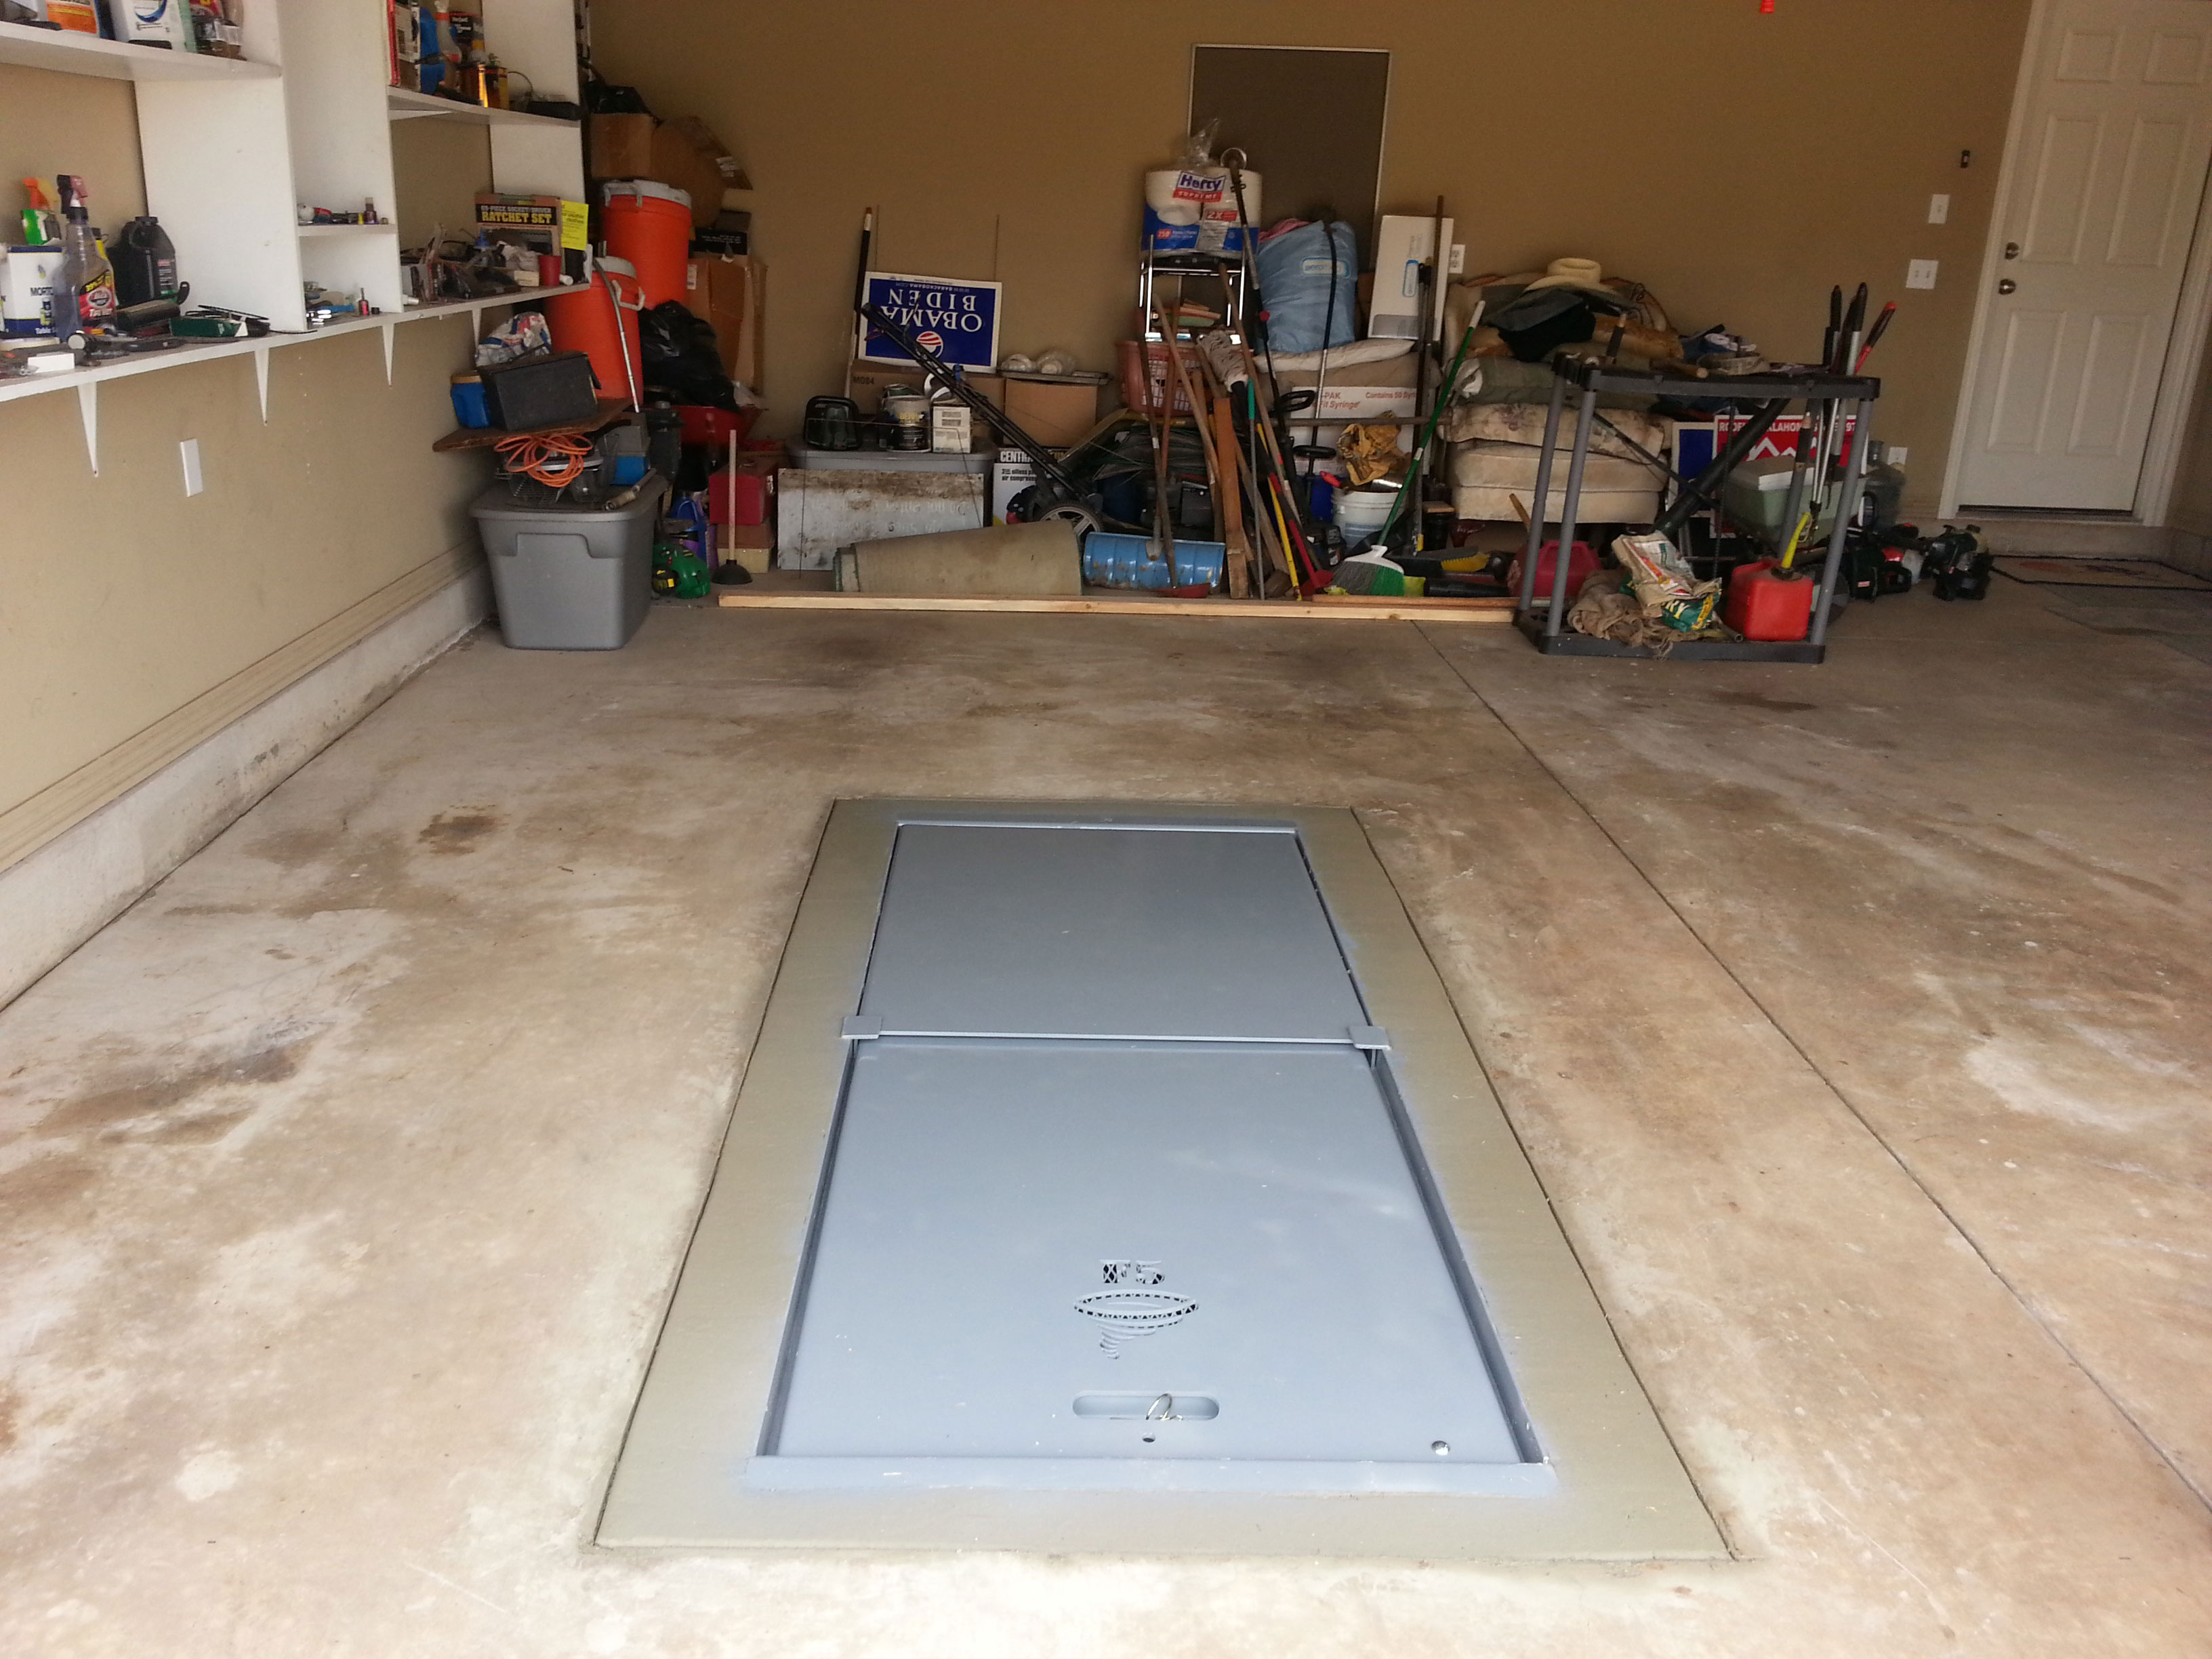 Placement of Storm Shelter in Your Garage